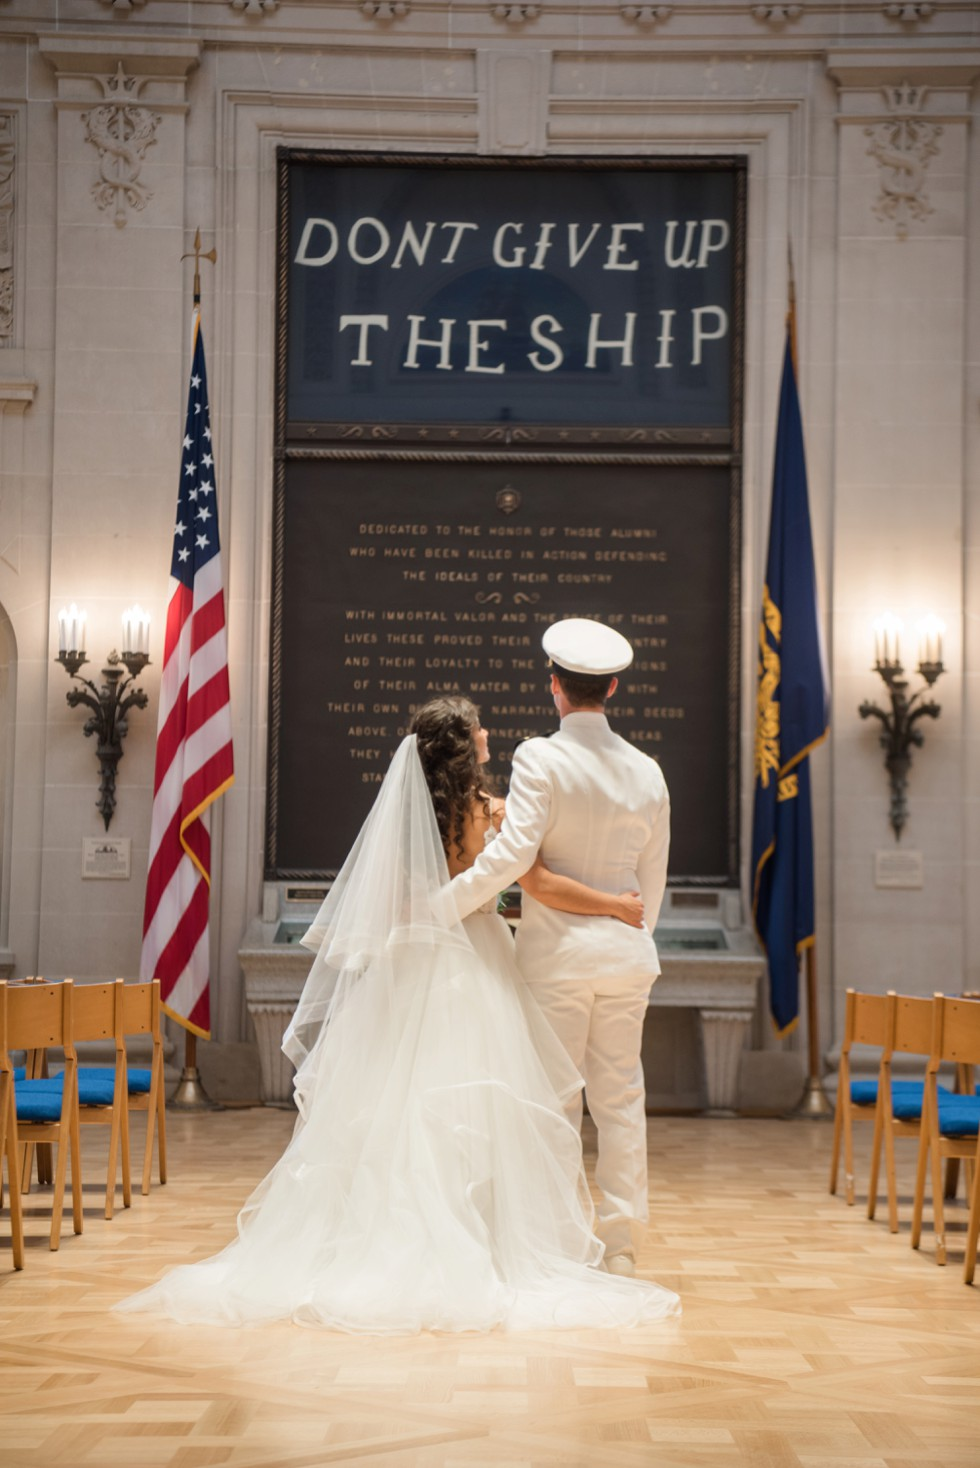 Dont give up the ship Bride and groom Memorial Hall USNA wedding